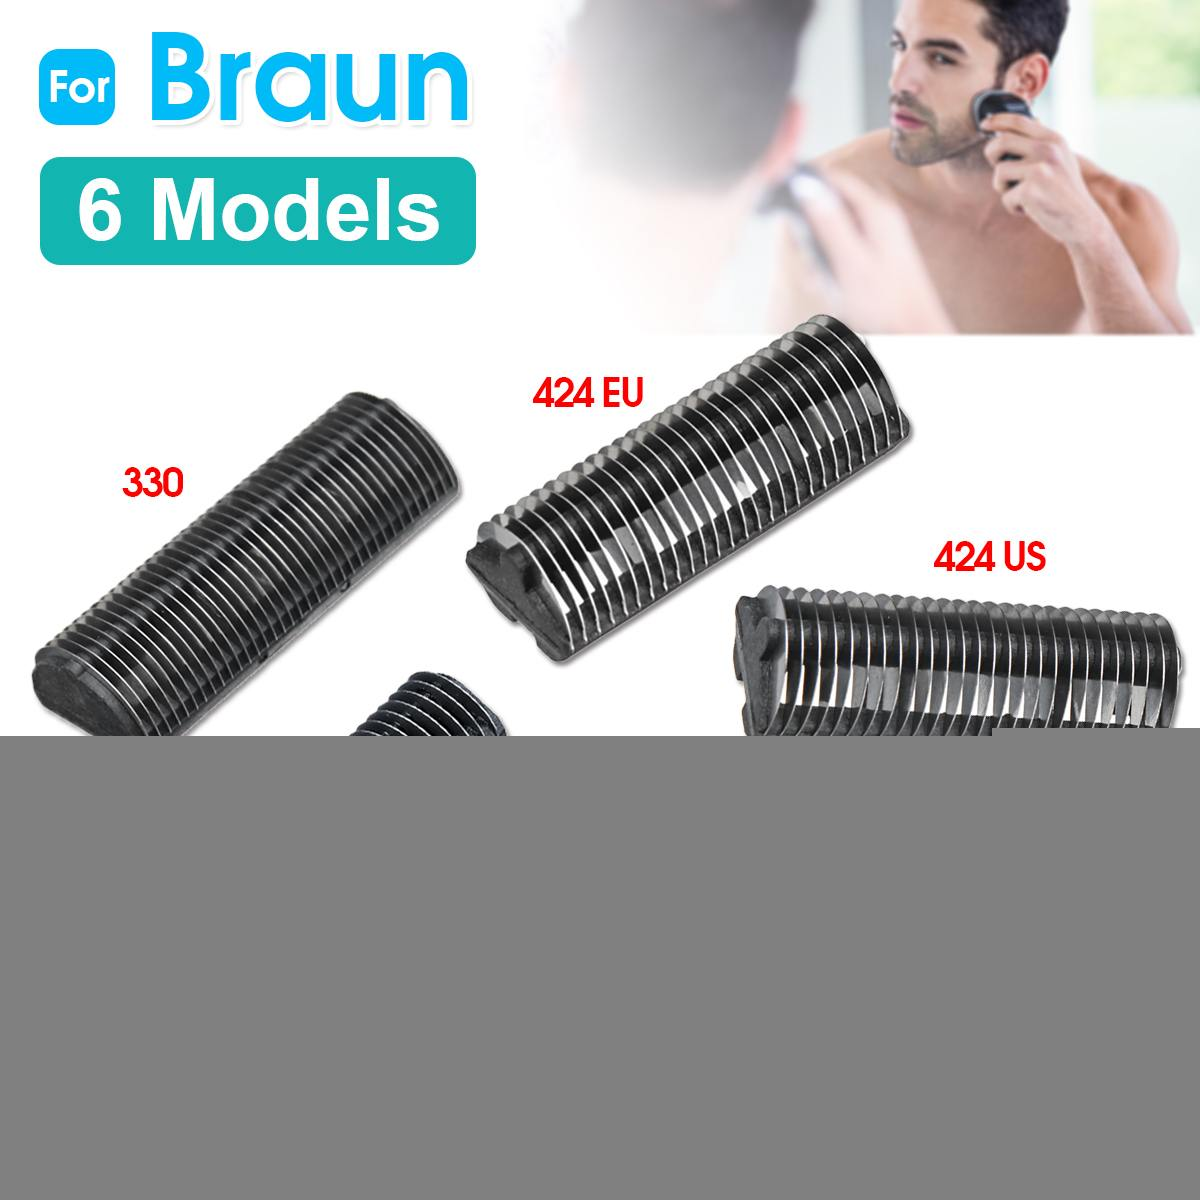 Replacement Shaver Cutter For Braun 330 346 383 410 424EU 424US 10B 20B 20S 428EU 428US 5235 5533 Razor Shaver Cutter 5 Types